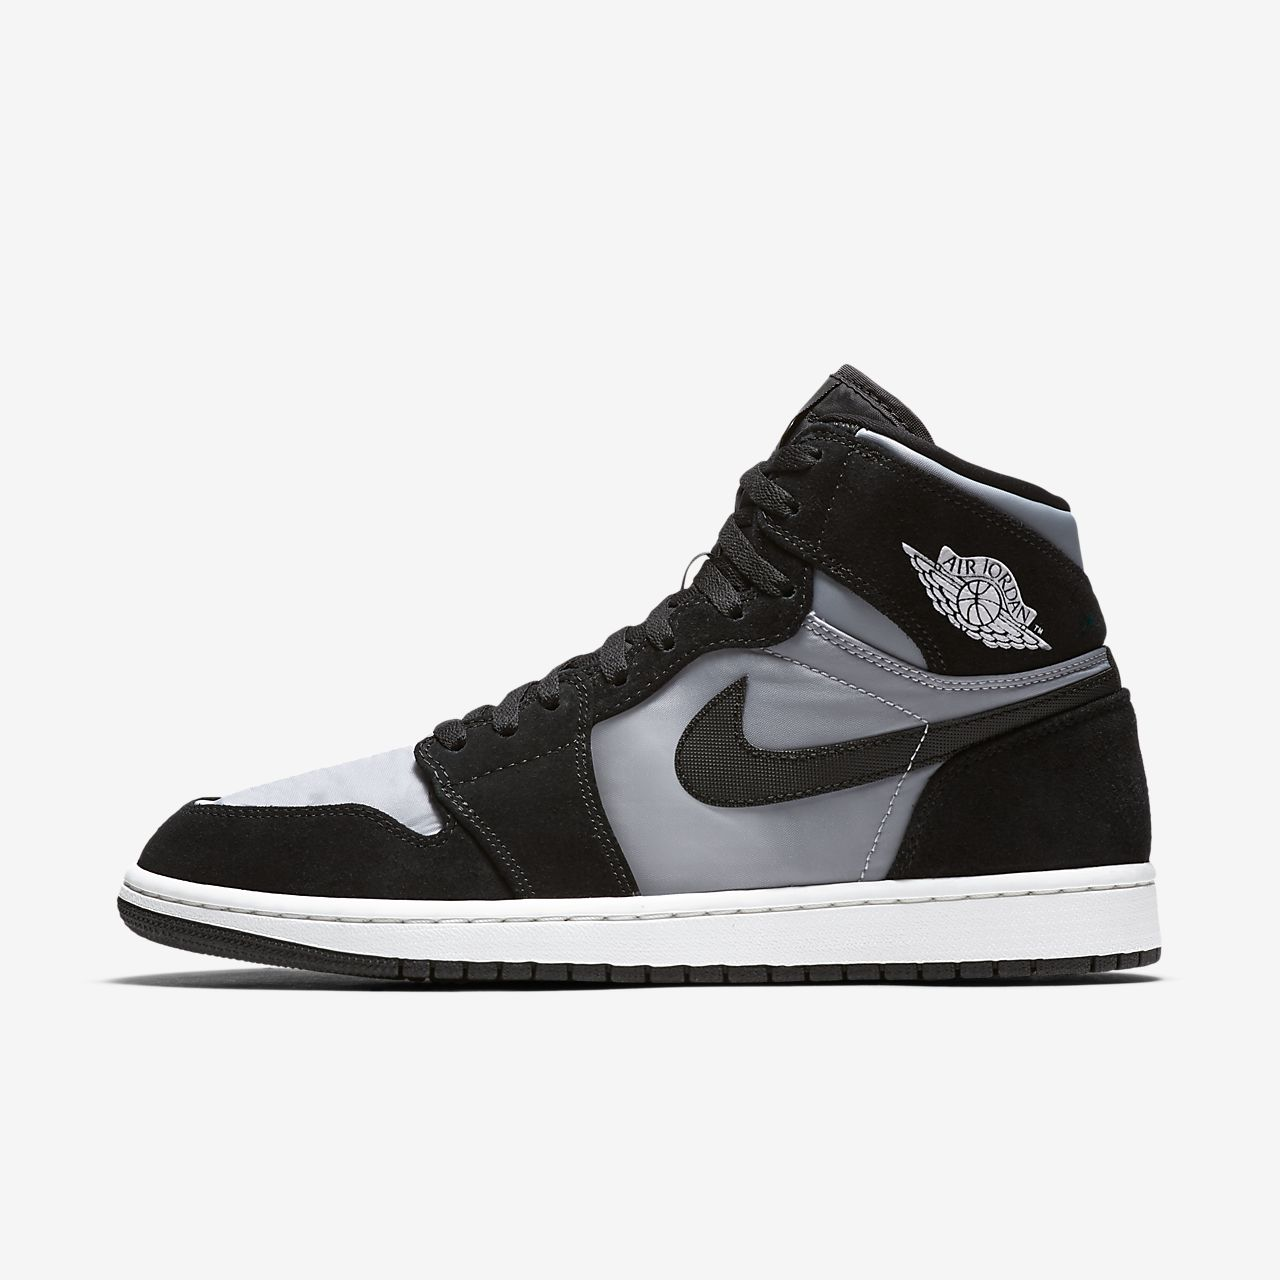 Air Jordan 1 Retro High Premium 男鞋